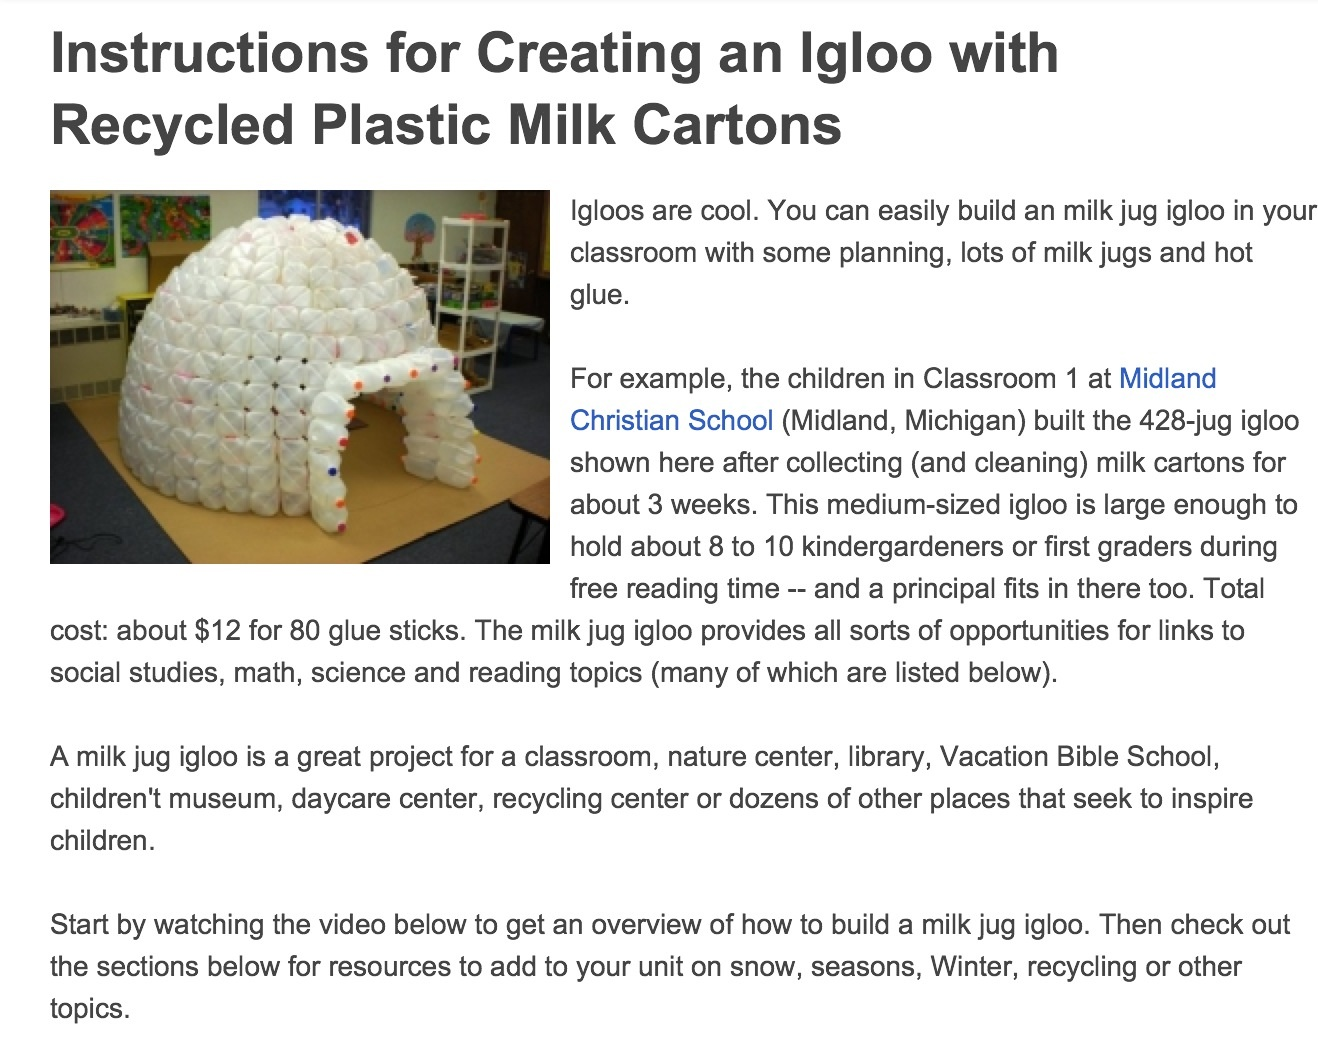 Igloo from milk cartons circuit diagram maker for How to build an igloo out of milk jugs